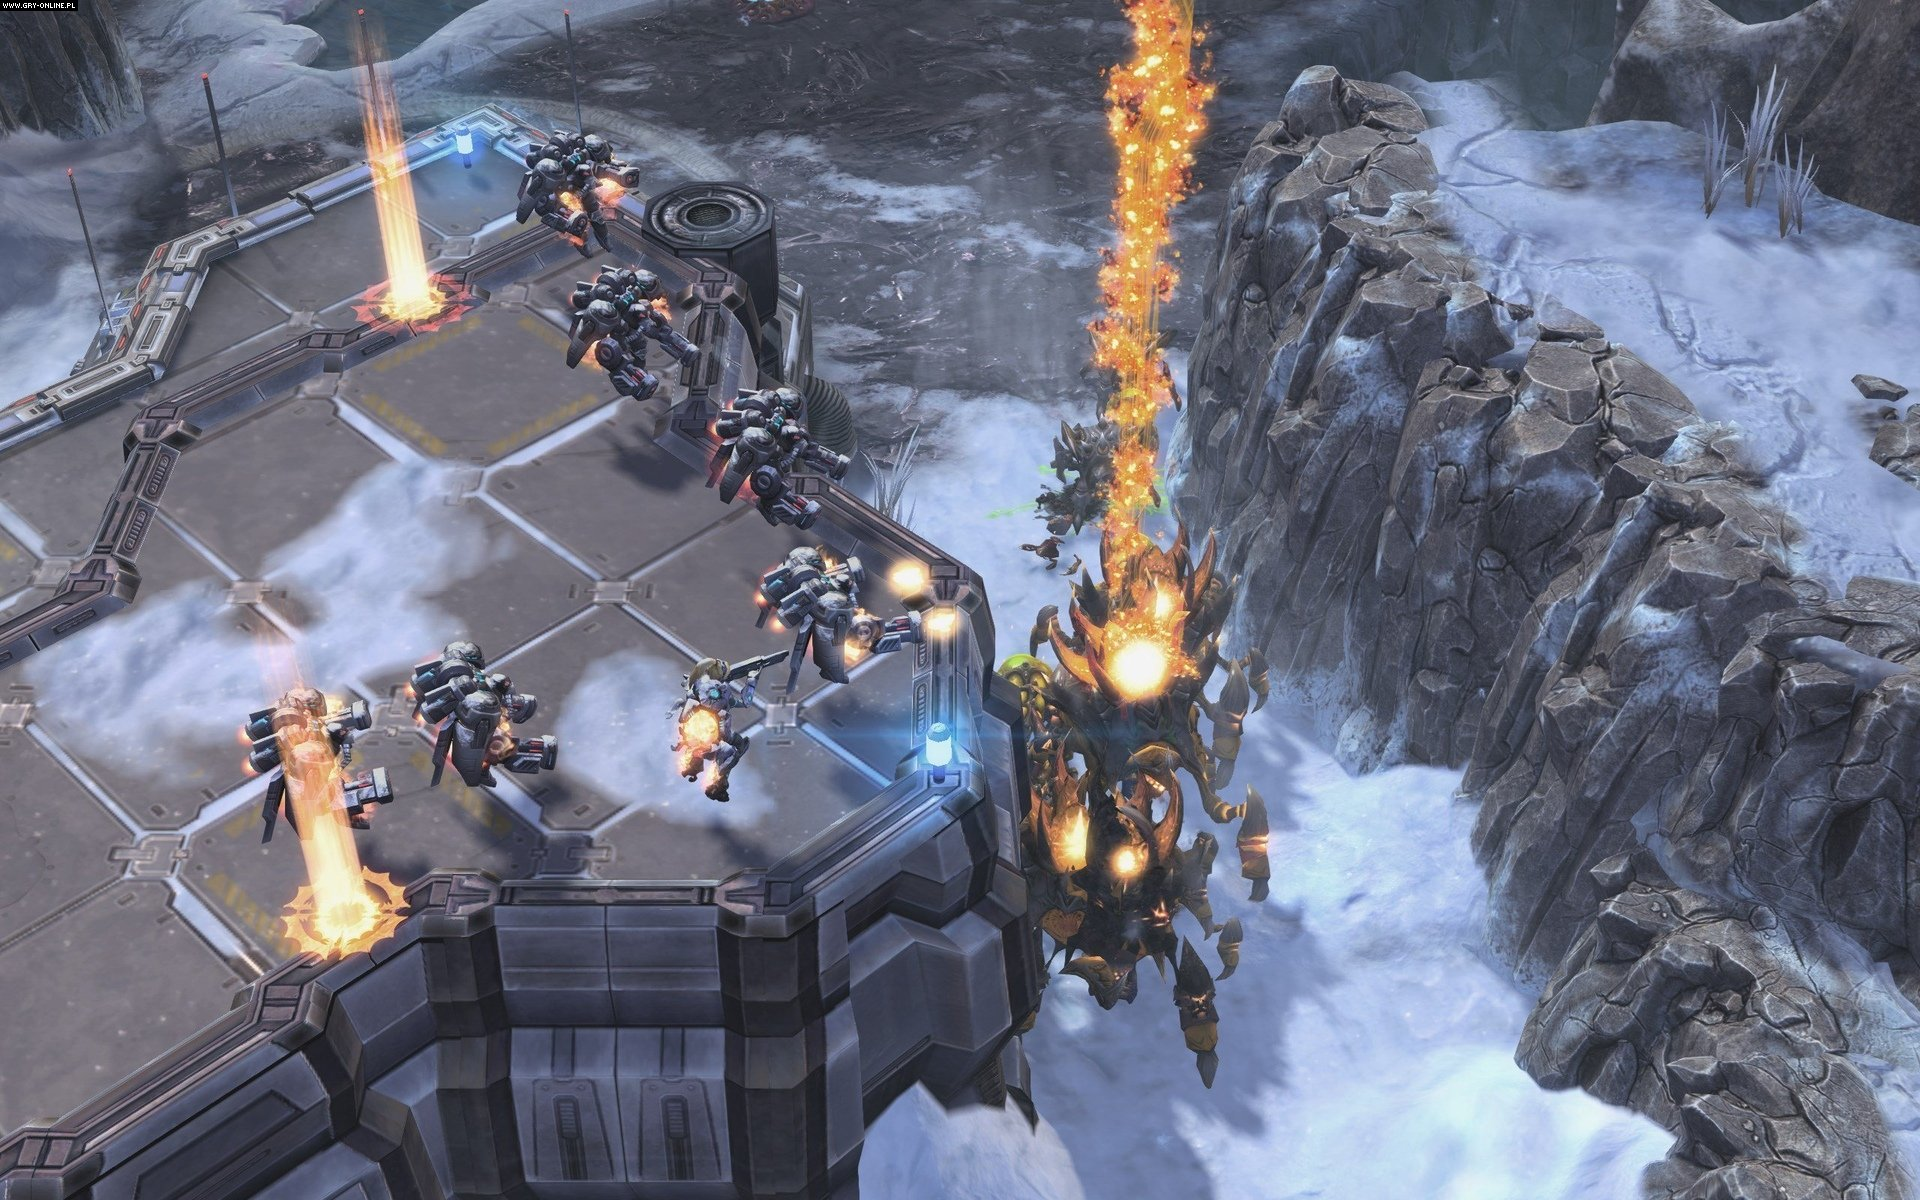 StarCraft II: Nova Covert Ops PC Games Image 21/21, Blizzard Entertainment